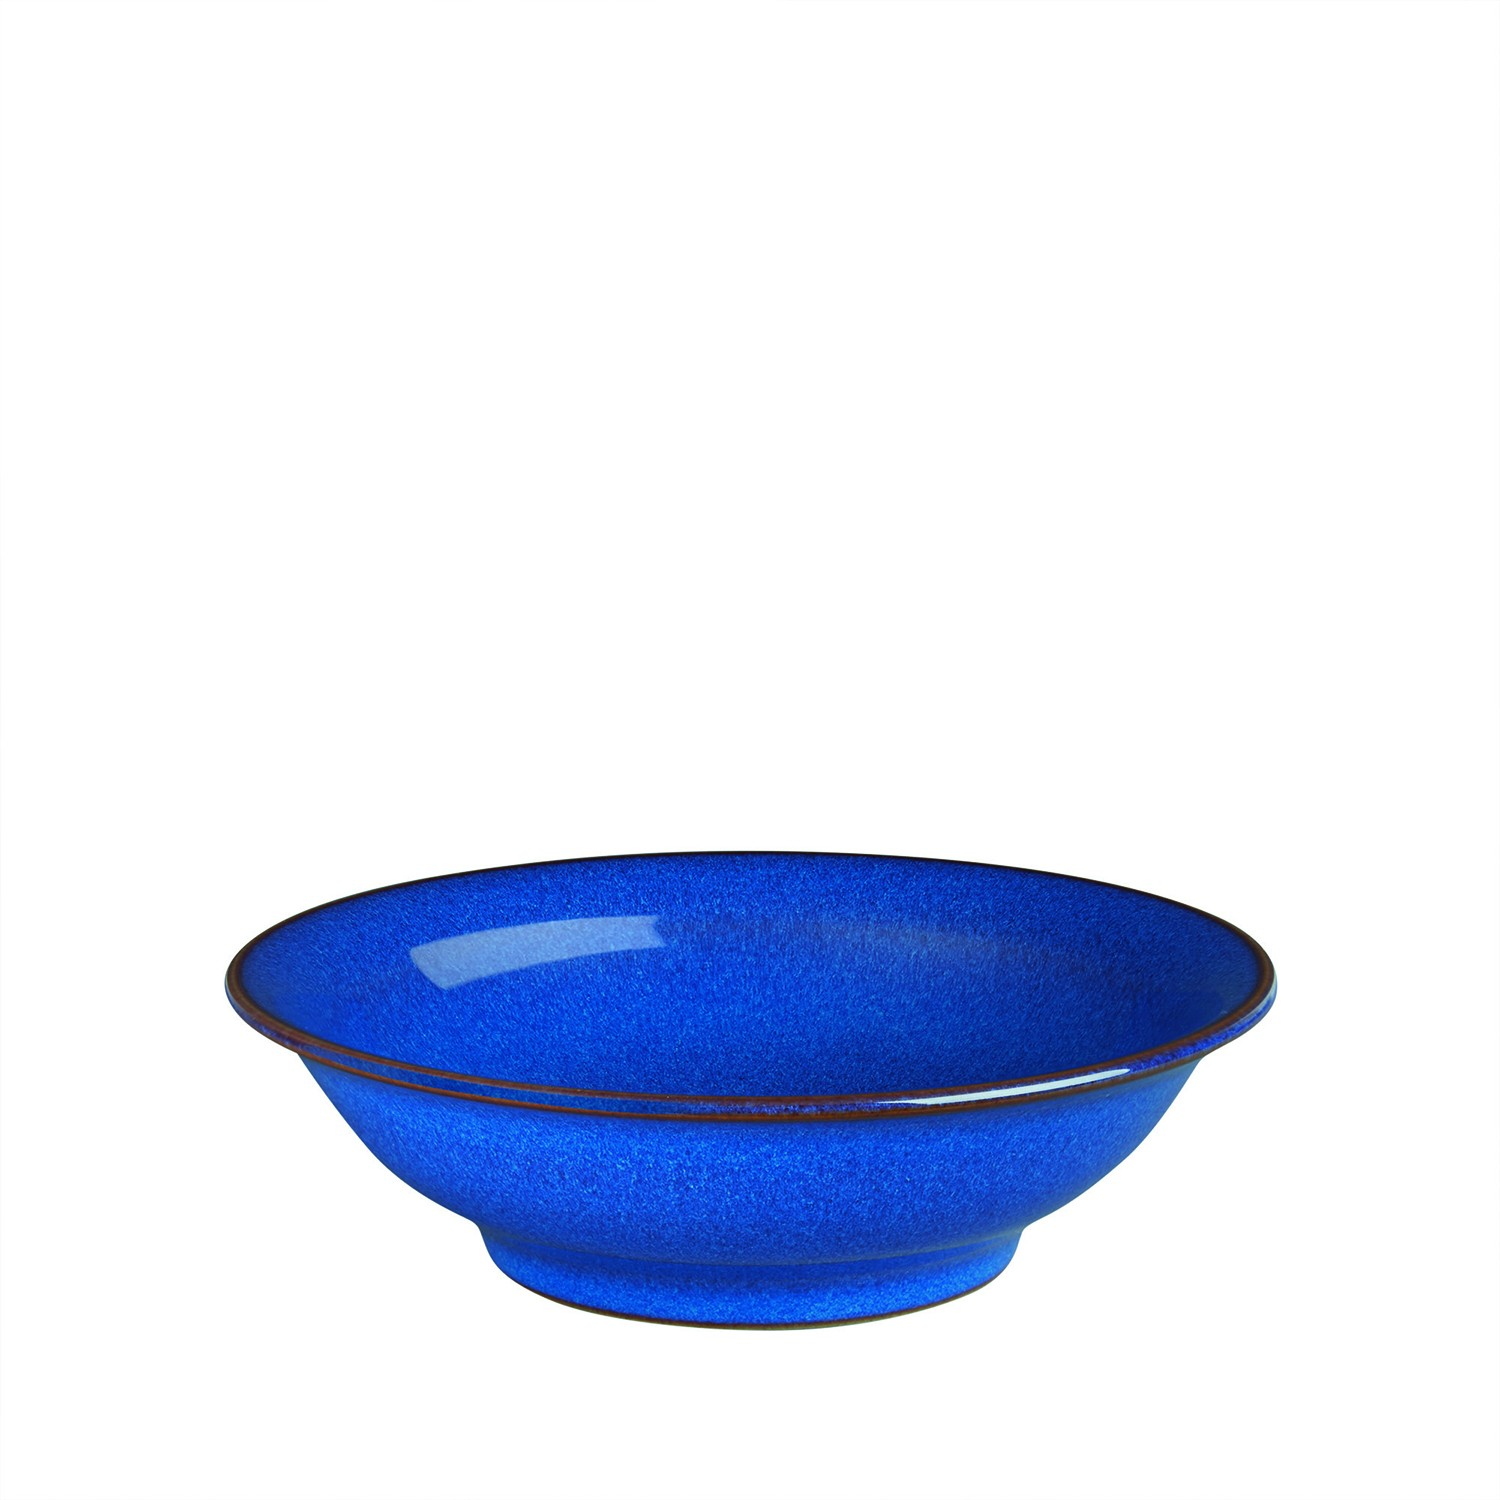 Denby Imperial Blue Shallow Bowl Leekes